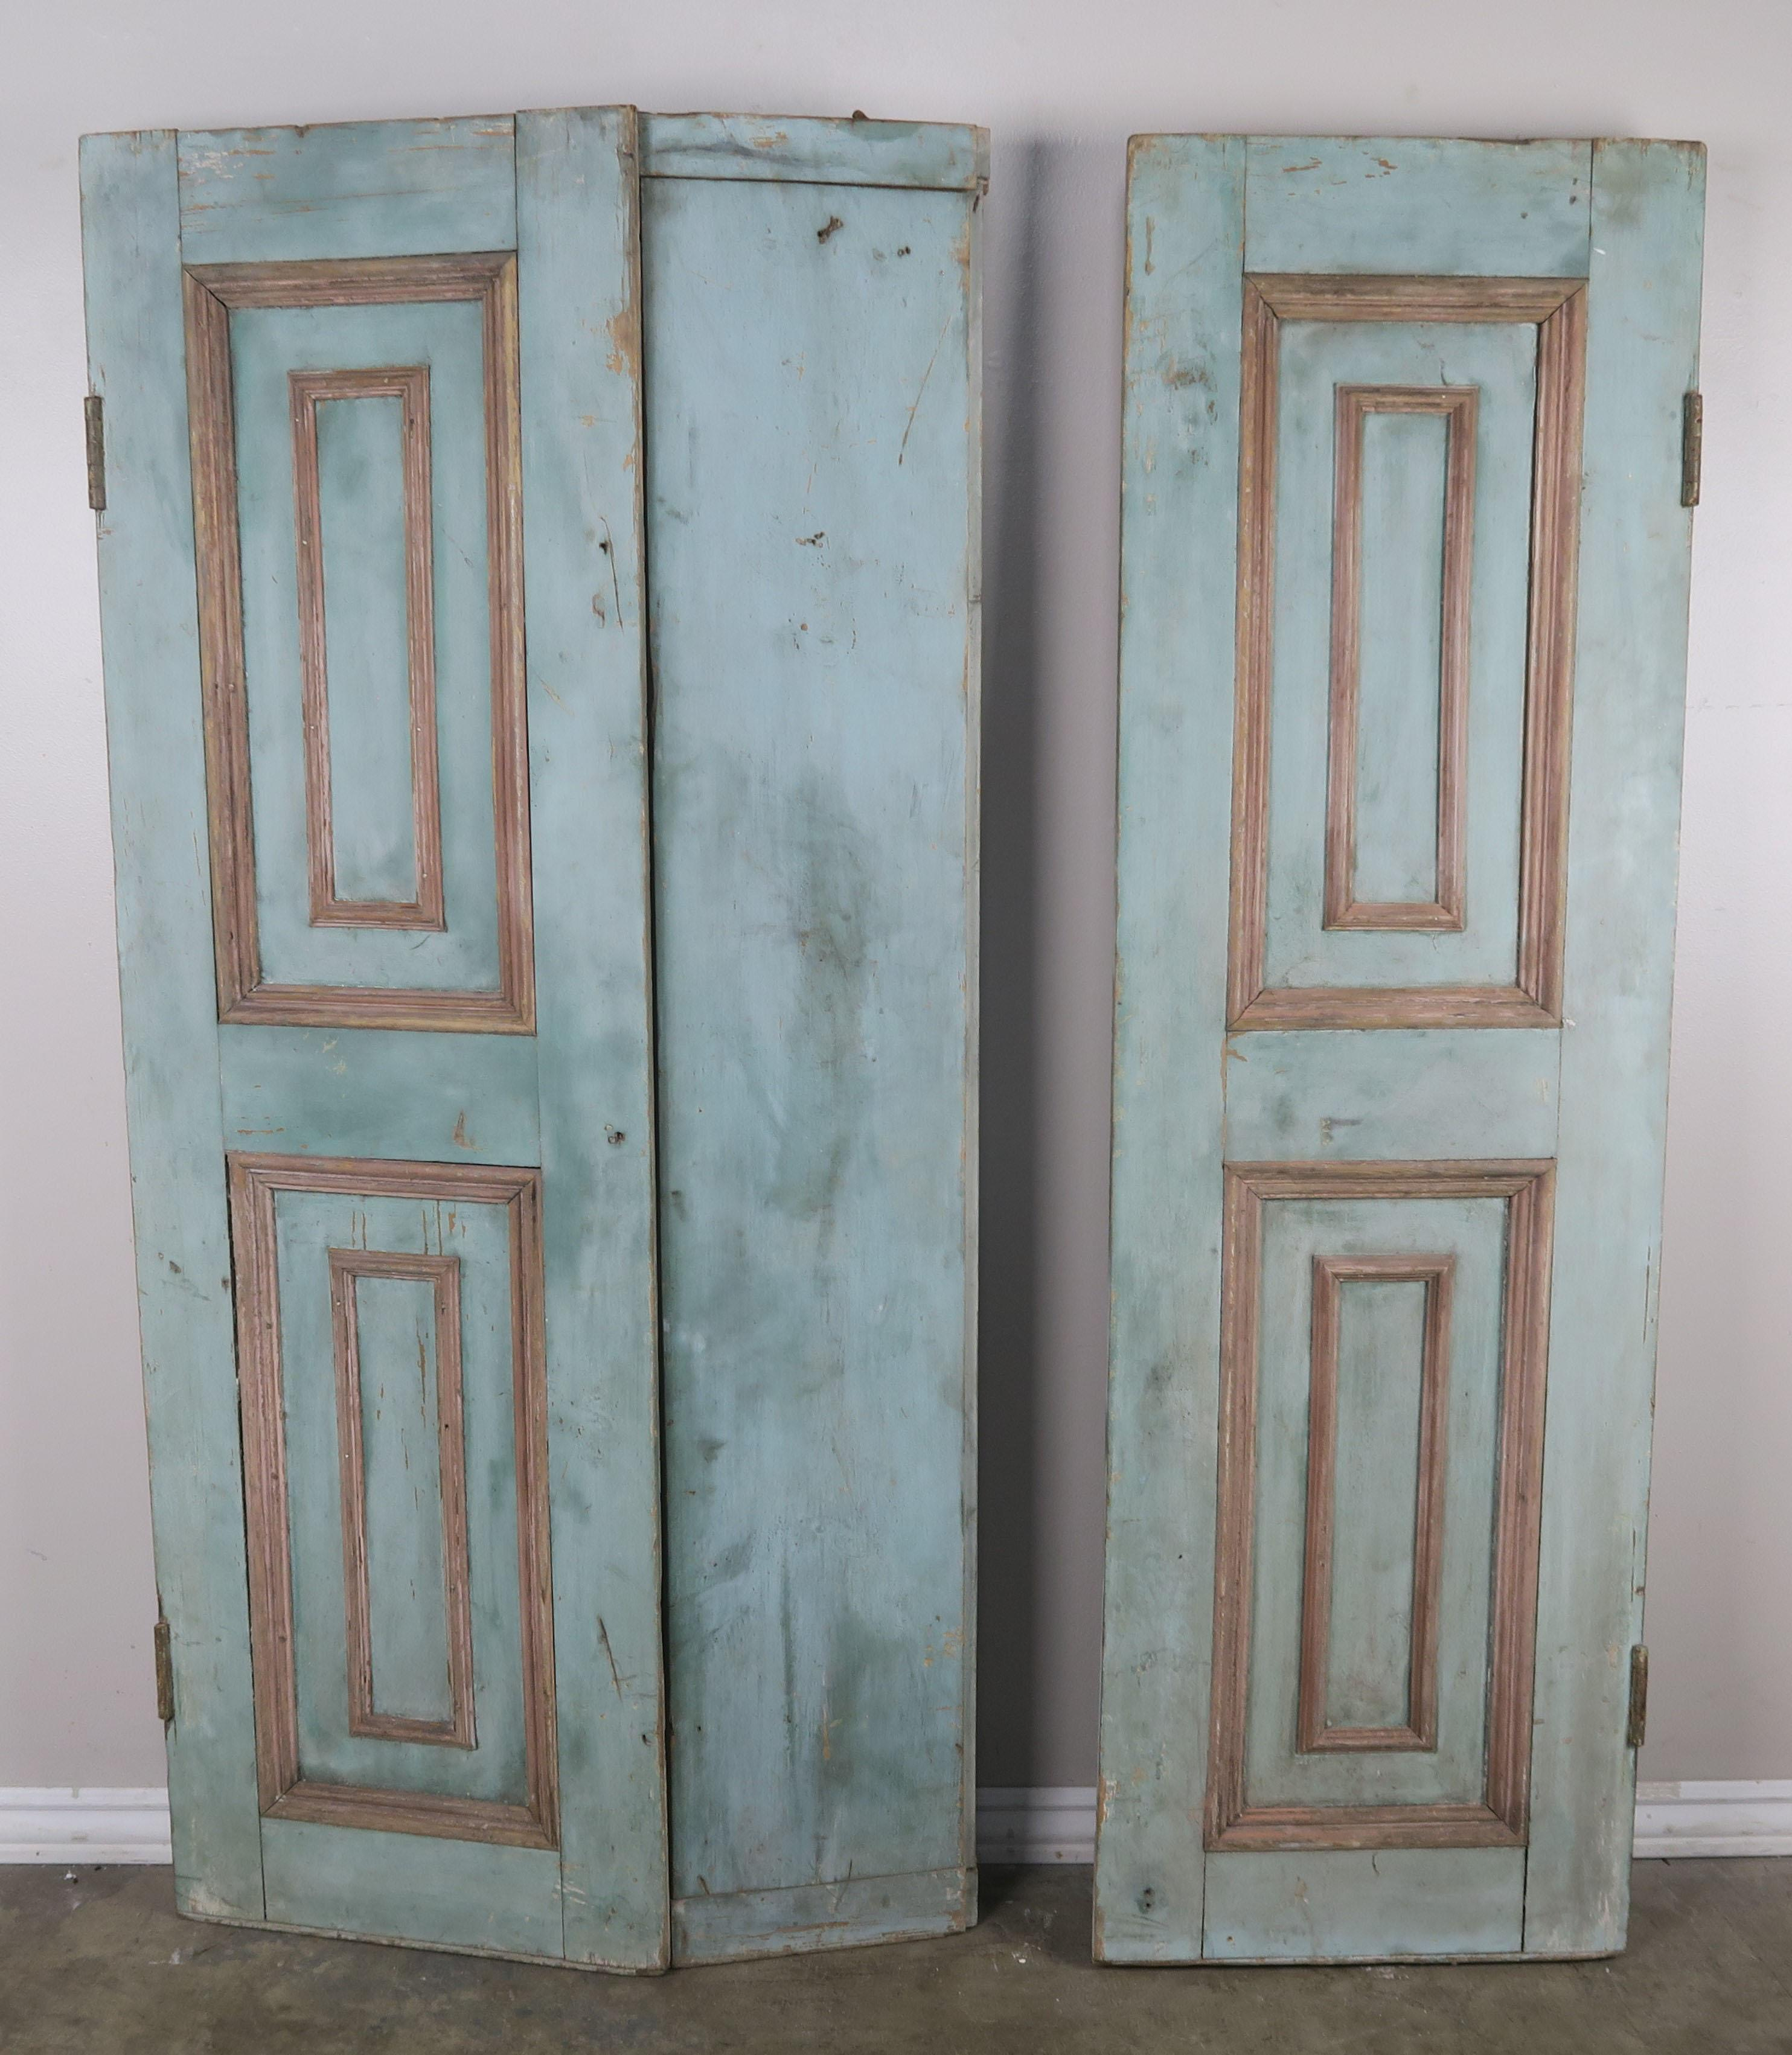 19th Century French Wood Painted Window Shutters Pair